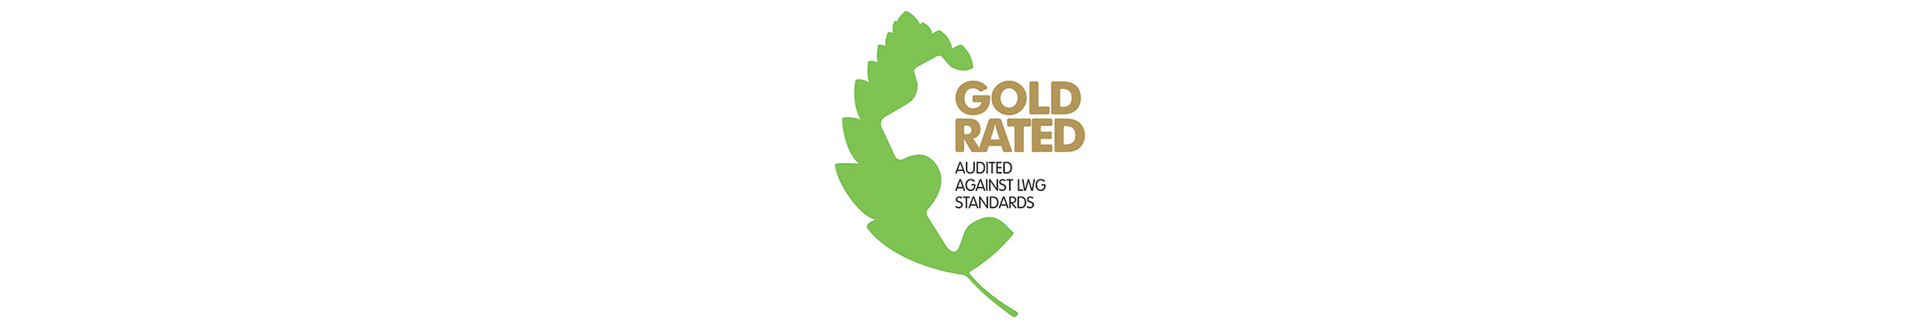 Leather Working Group Protocol Gold Rated